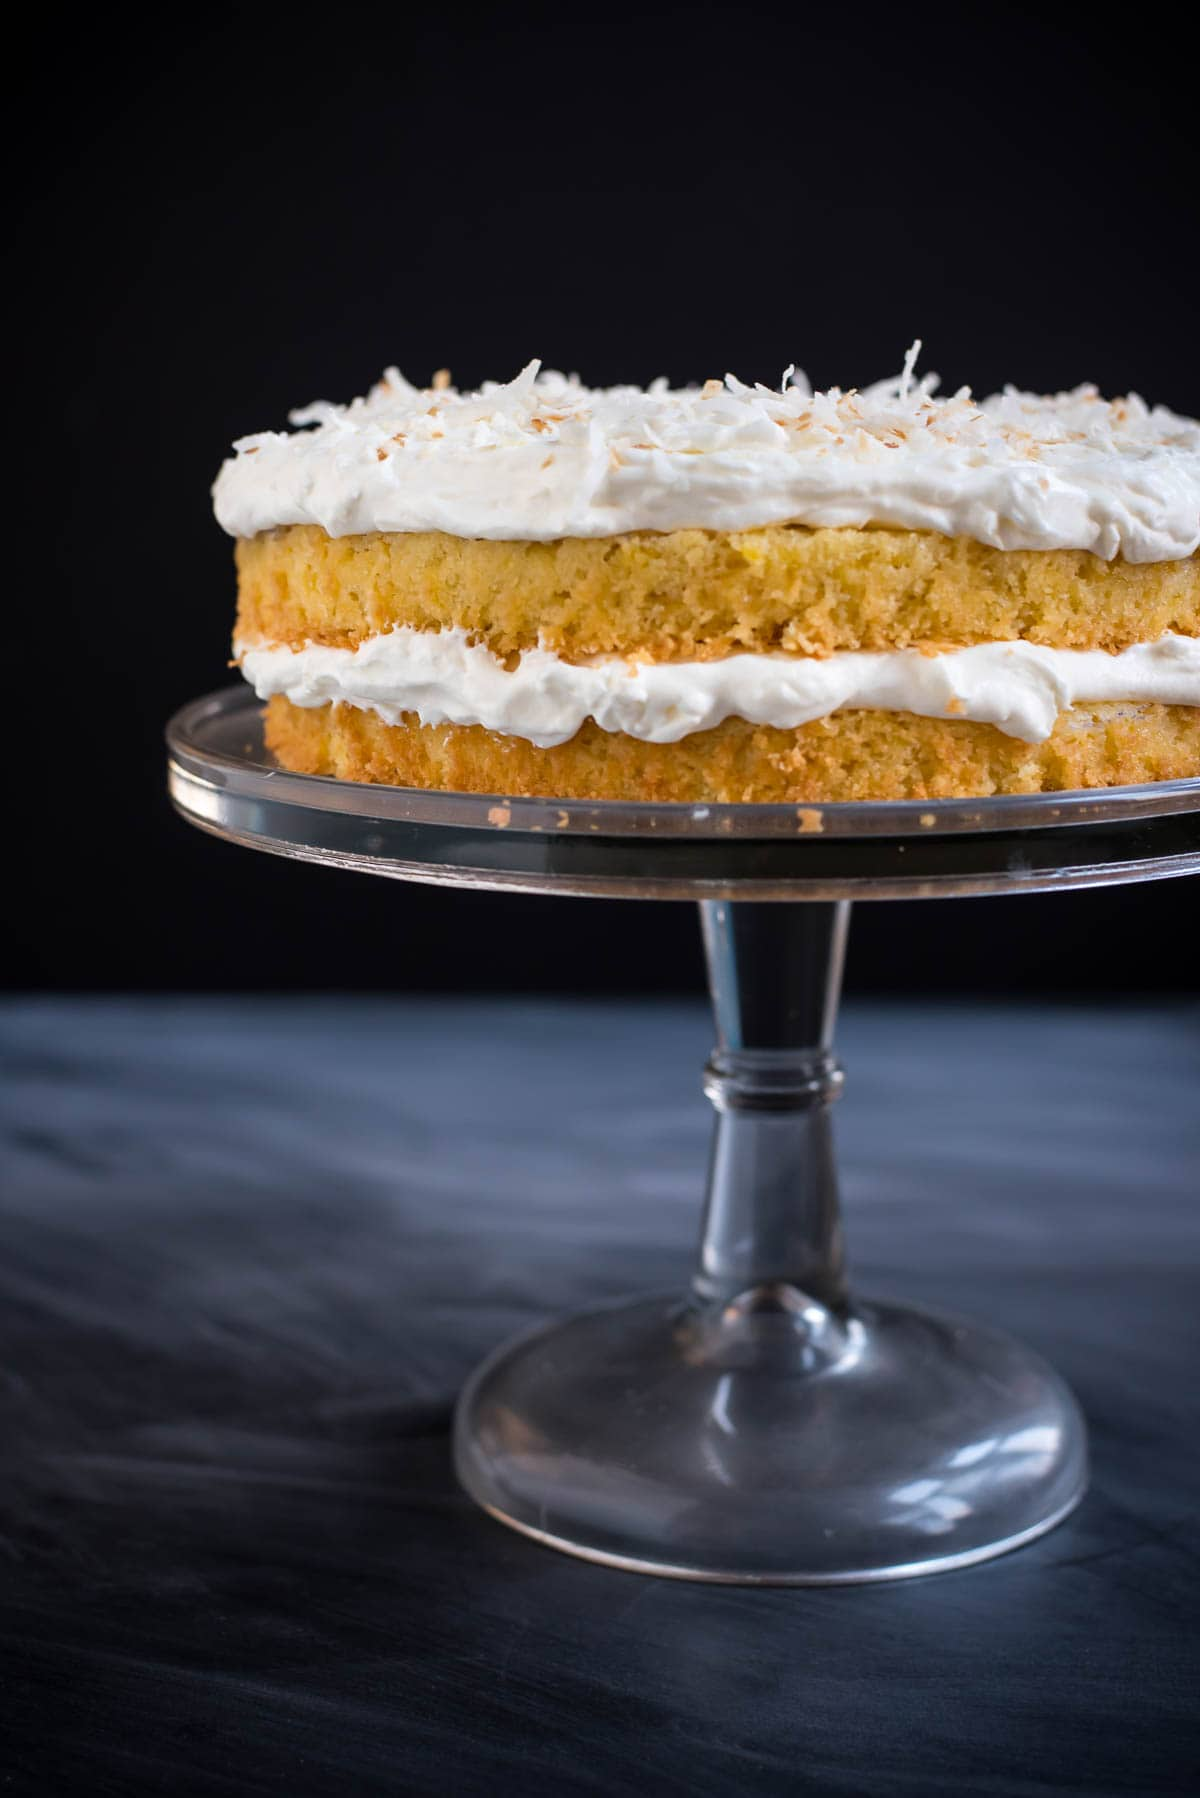 Fresh pineapple gives this Pineapple Coconut Cake so much tropical flavor and the fluffy coconut frosting is divine!